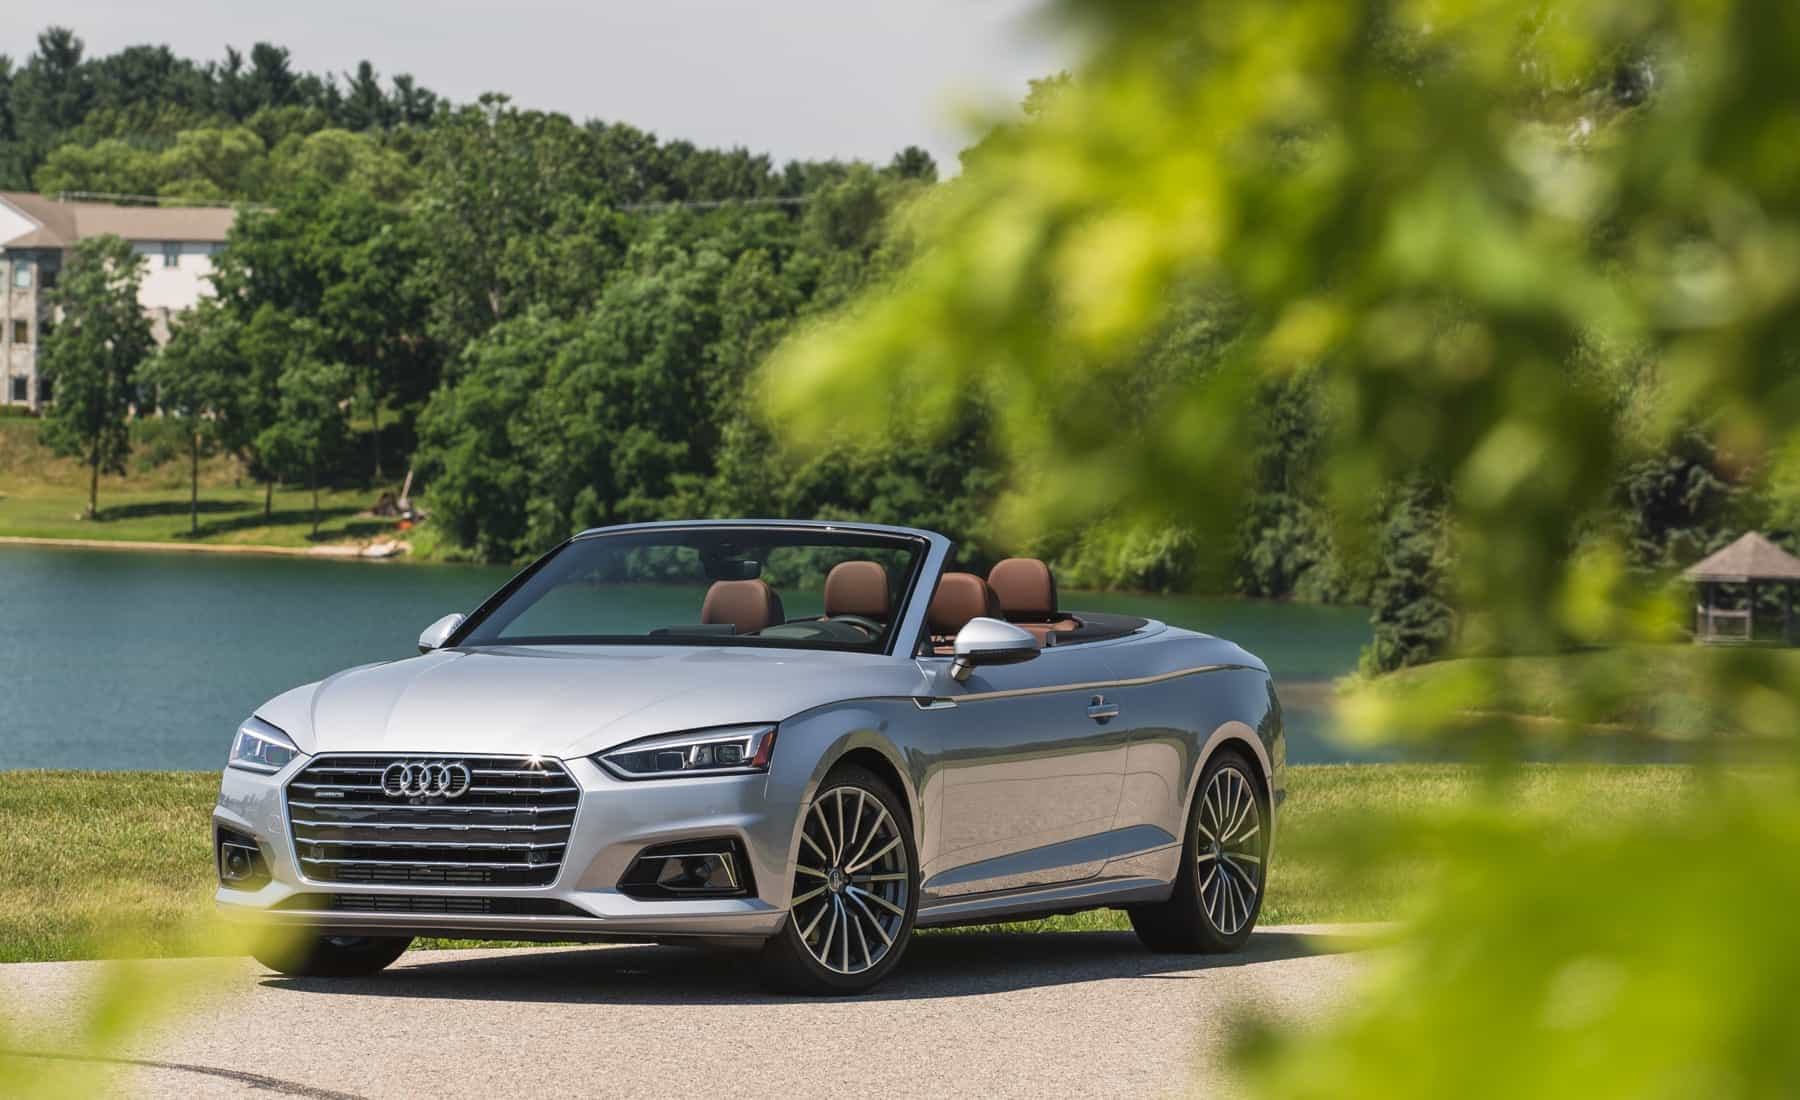 2018 Audi A5 Cabriolet Exterior Roof Open Front And Side (Photo 5 of 45)